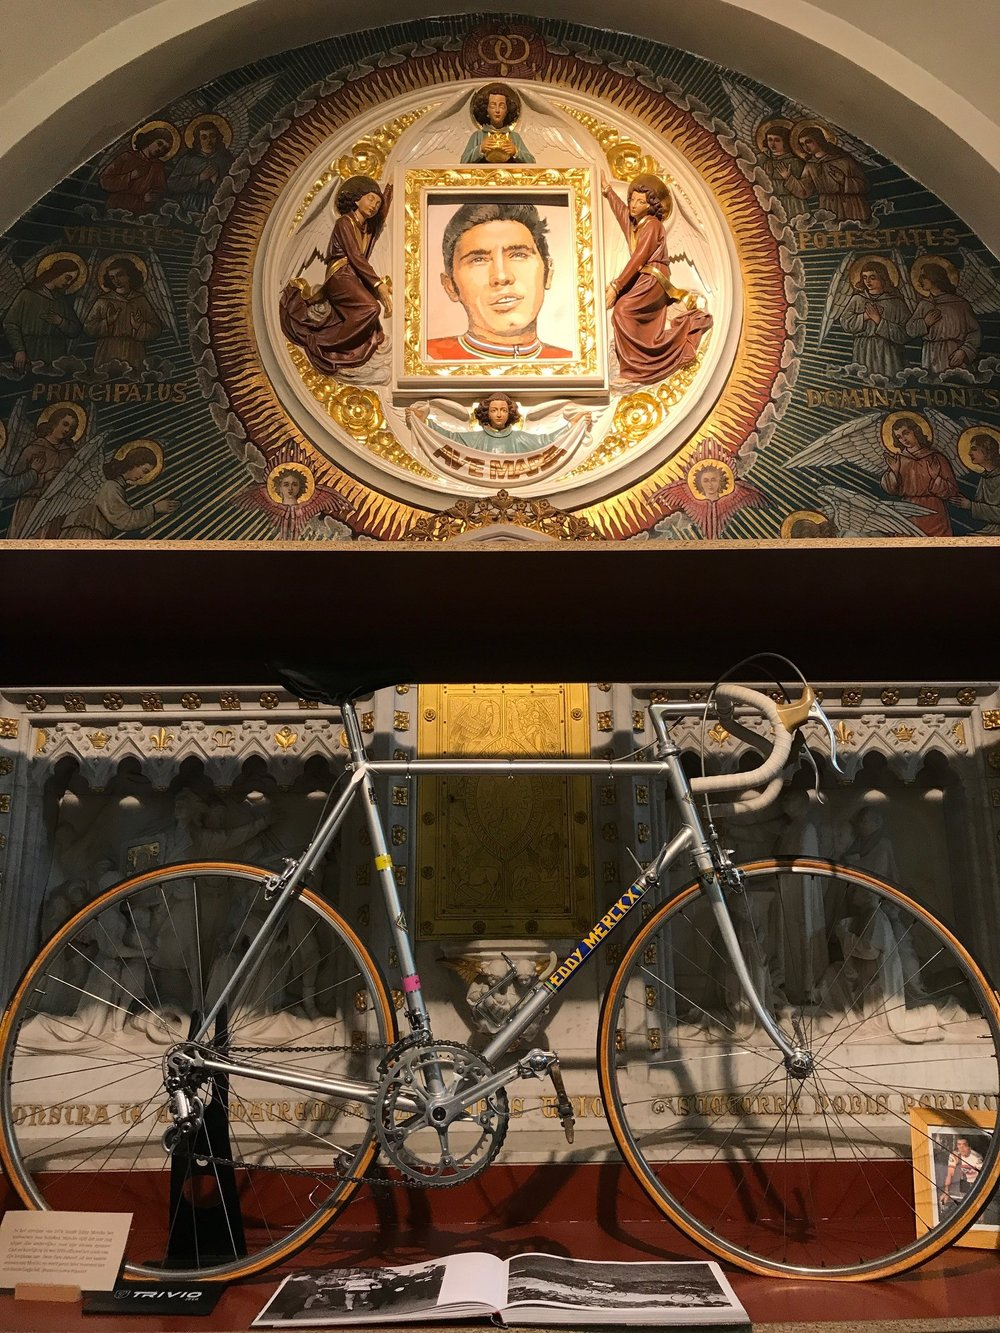 Roeselare Cycling Museum 17 - the Eddy Merckx display featured his 1978 racing bike in the C&A professional team colours. The items on display in the Fathers Church are only a small portion of what will be on display at the new museum when it opens in March 2018. The Dwars Vlaanderen (Across Flanders) professional race will start in April 2018 from outside the new Roeselare museum.